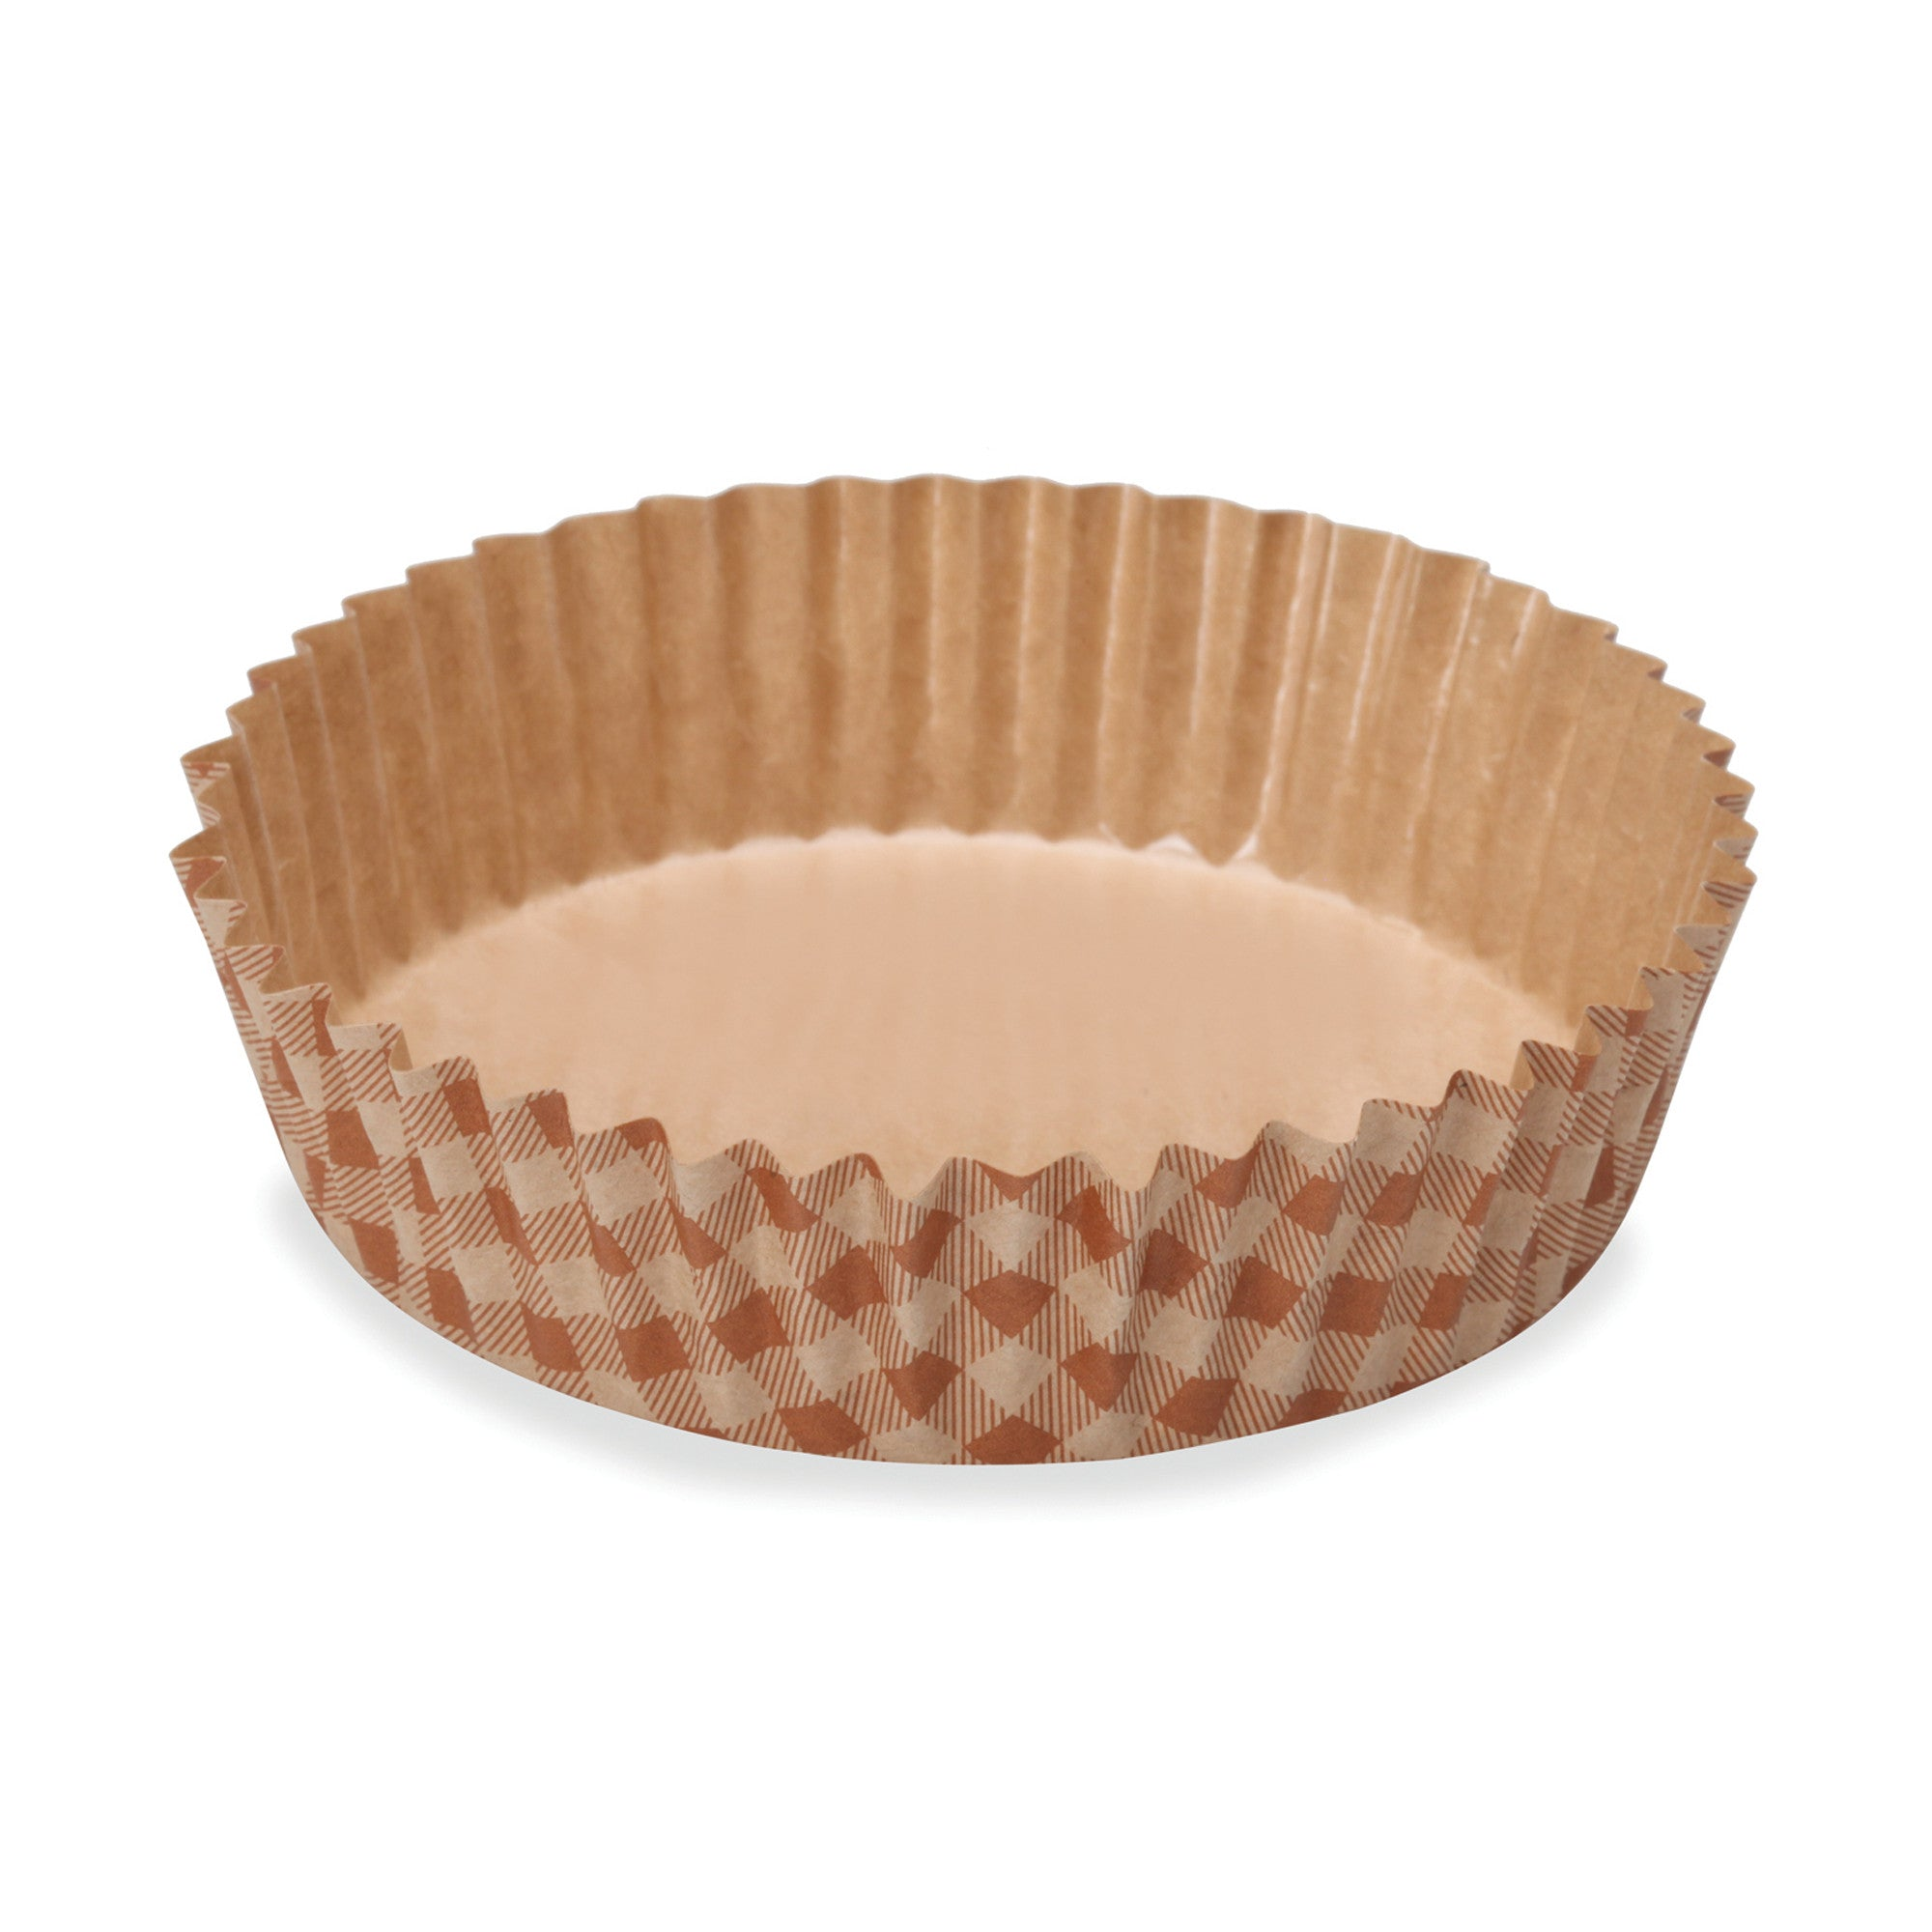 "Ruffled Baking Cups, 4"" Ruffled Baking Cup, Check (Set of 300) - Welcome Home Brands"